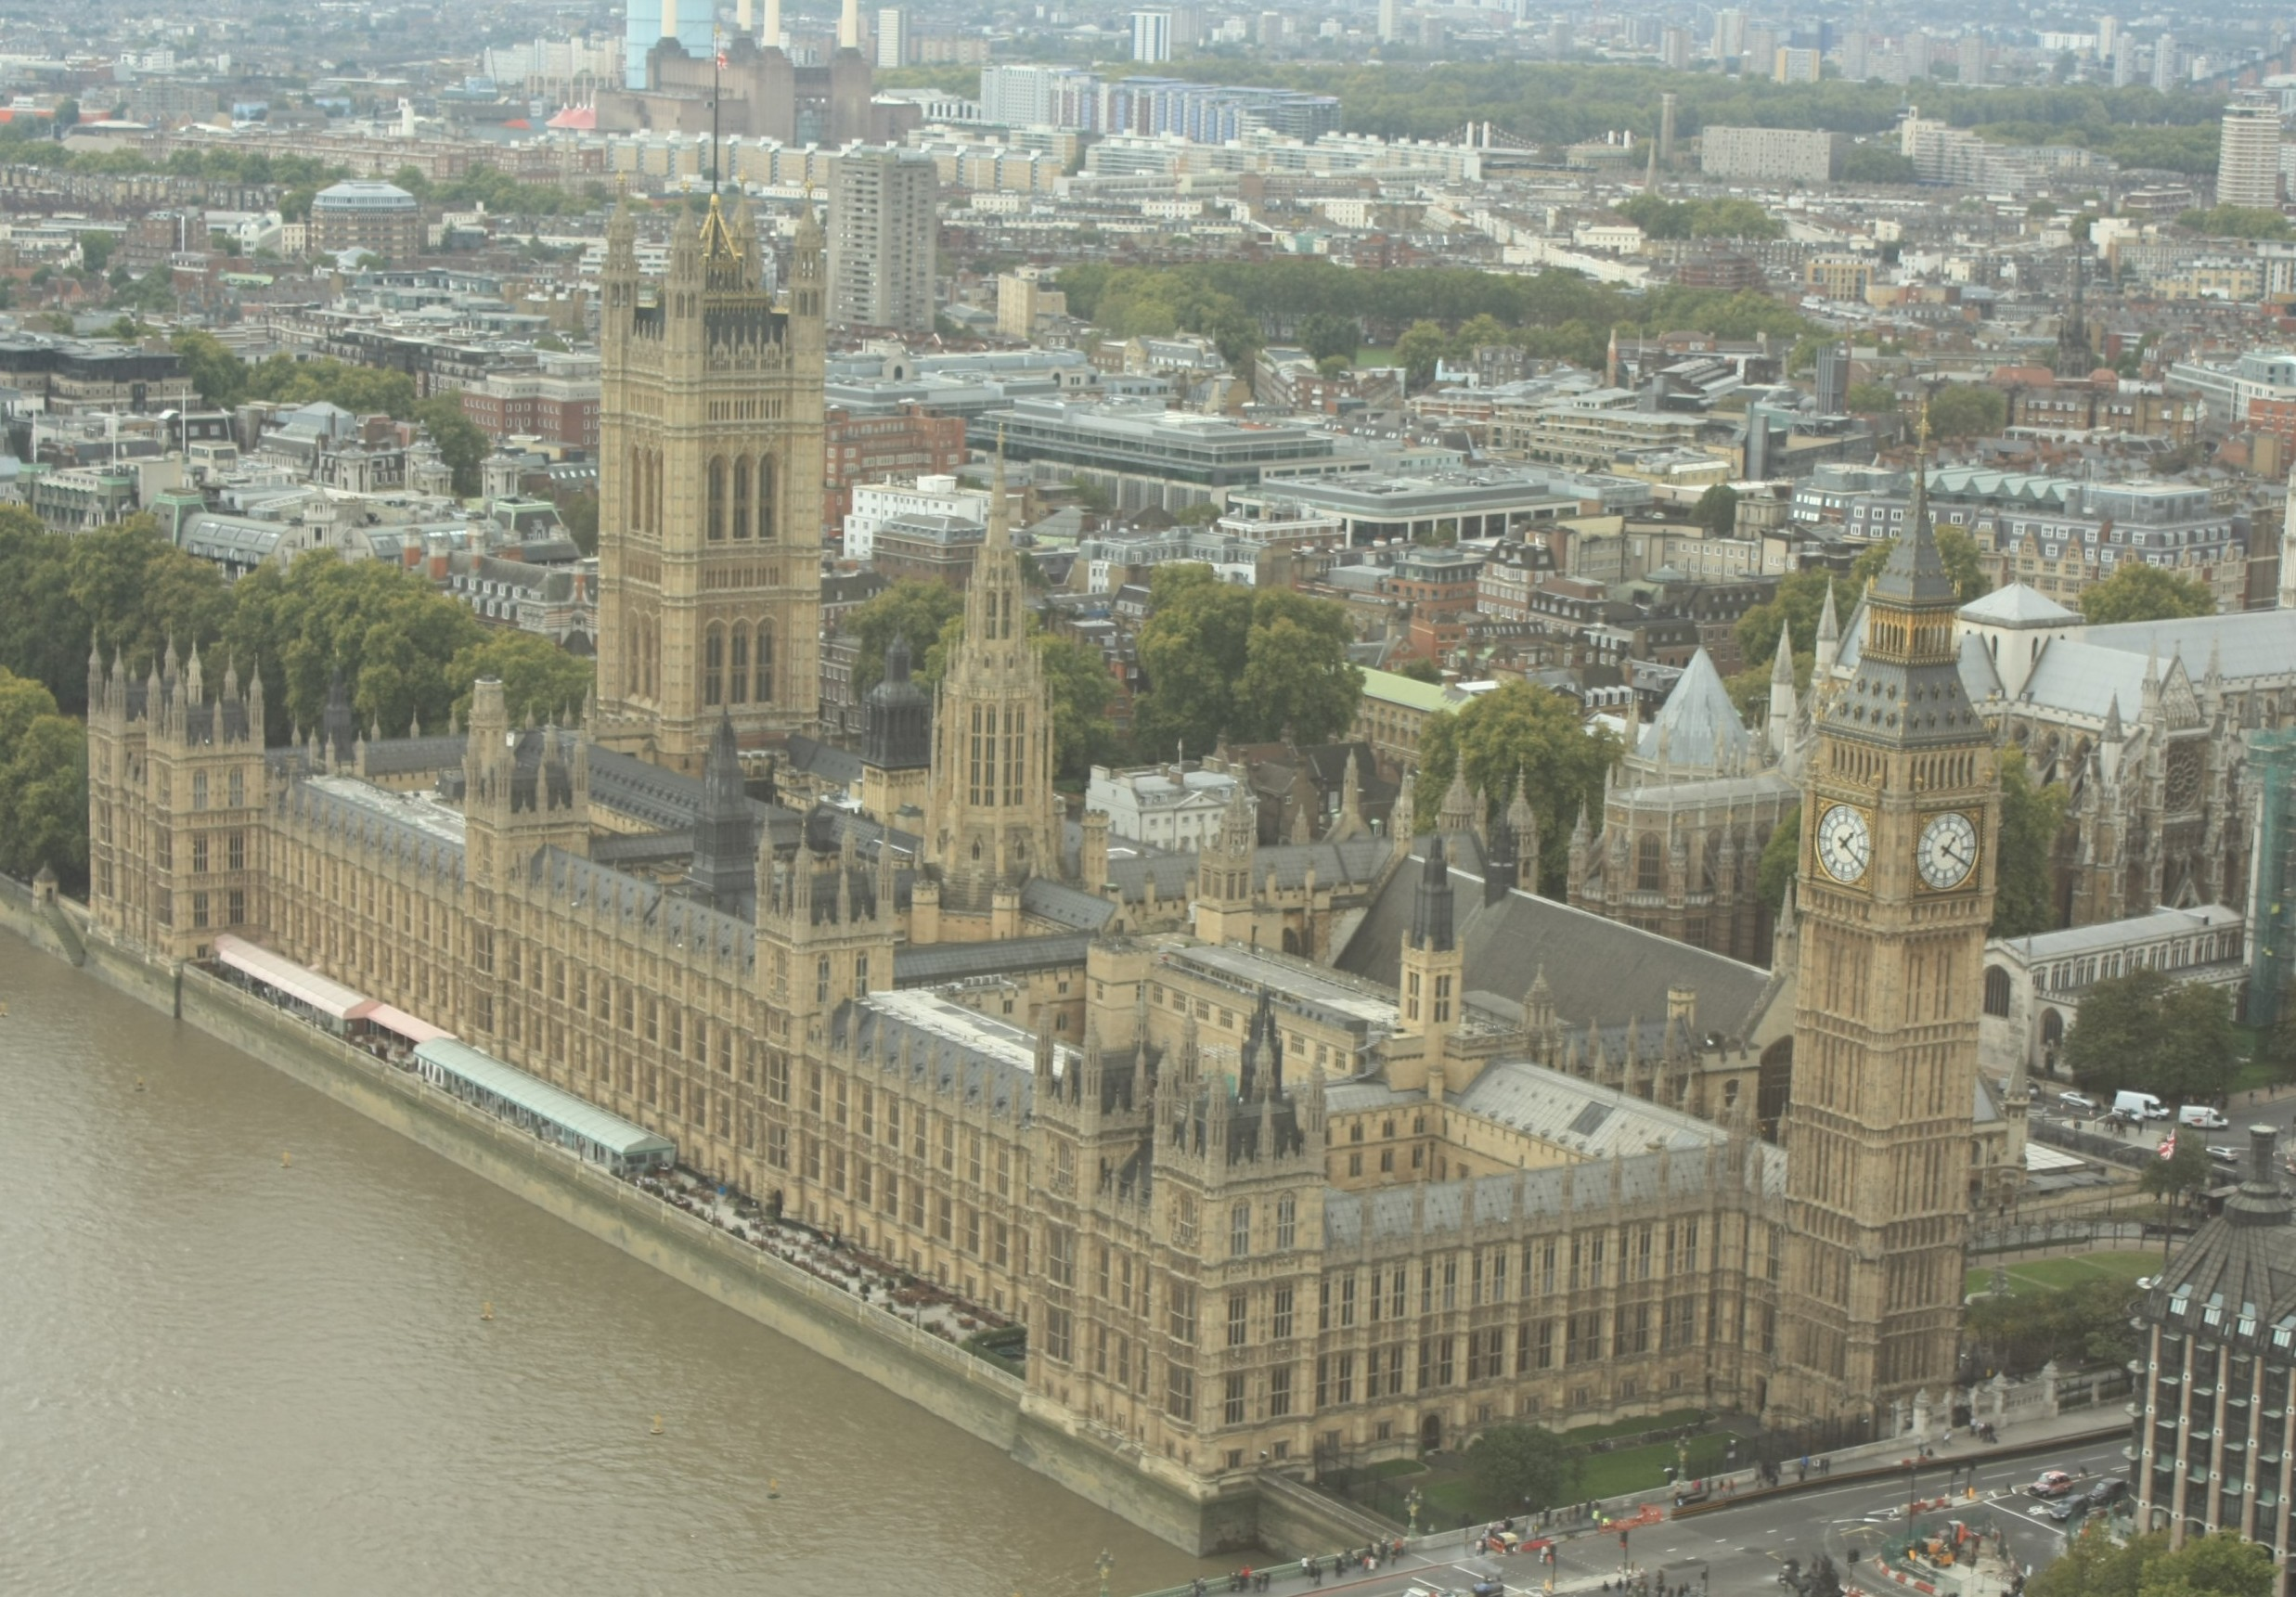 Public sector translation services depicted by the Westminster Buildings